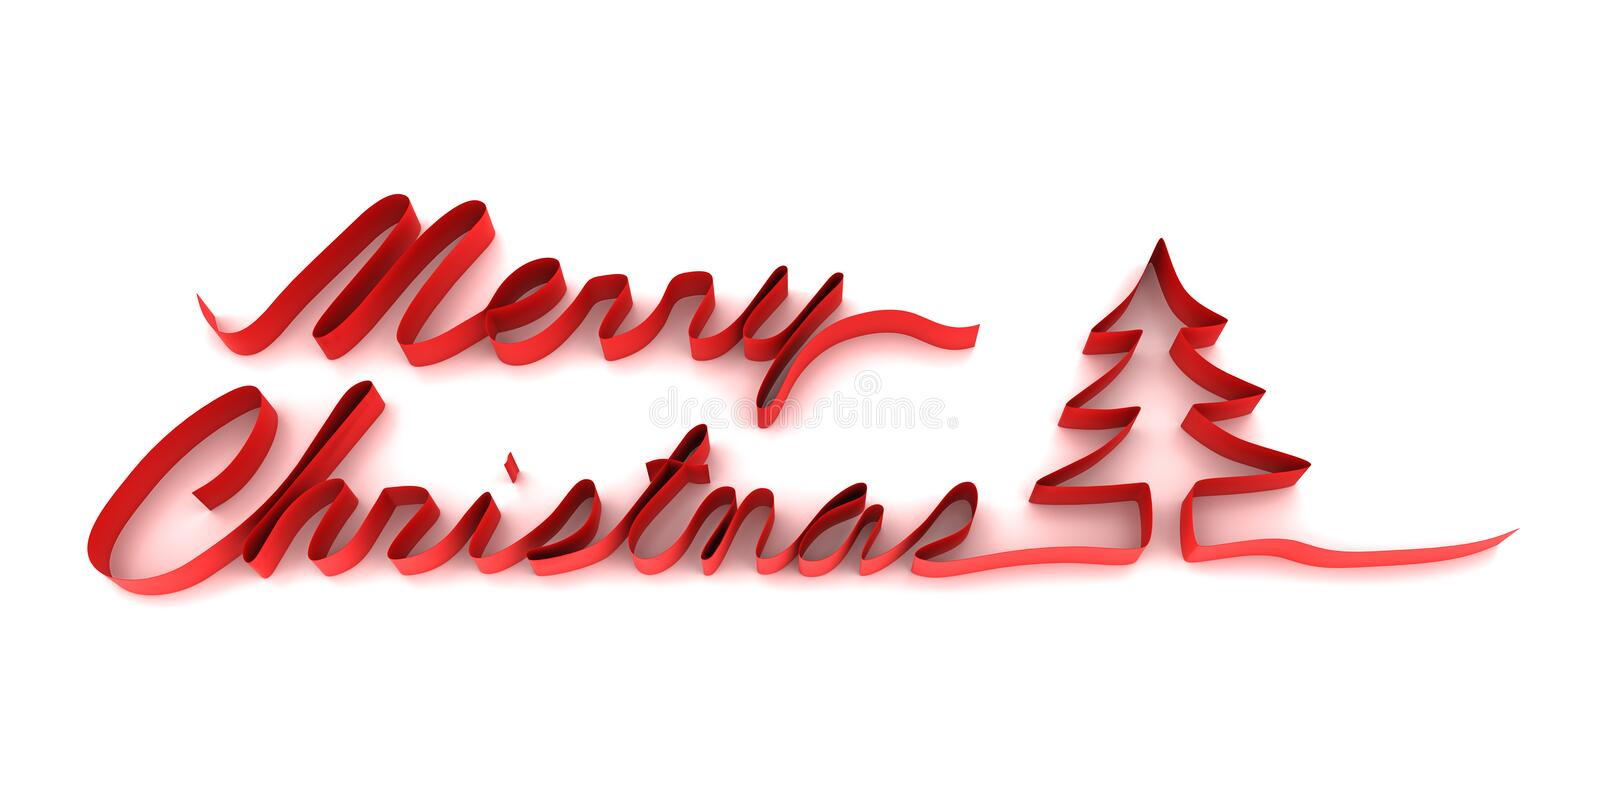 images of the word merry christmas